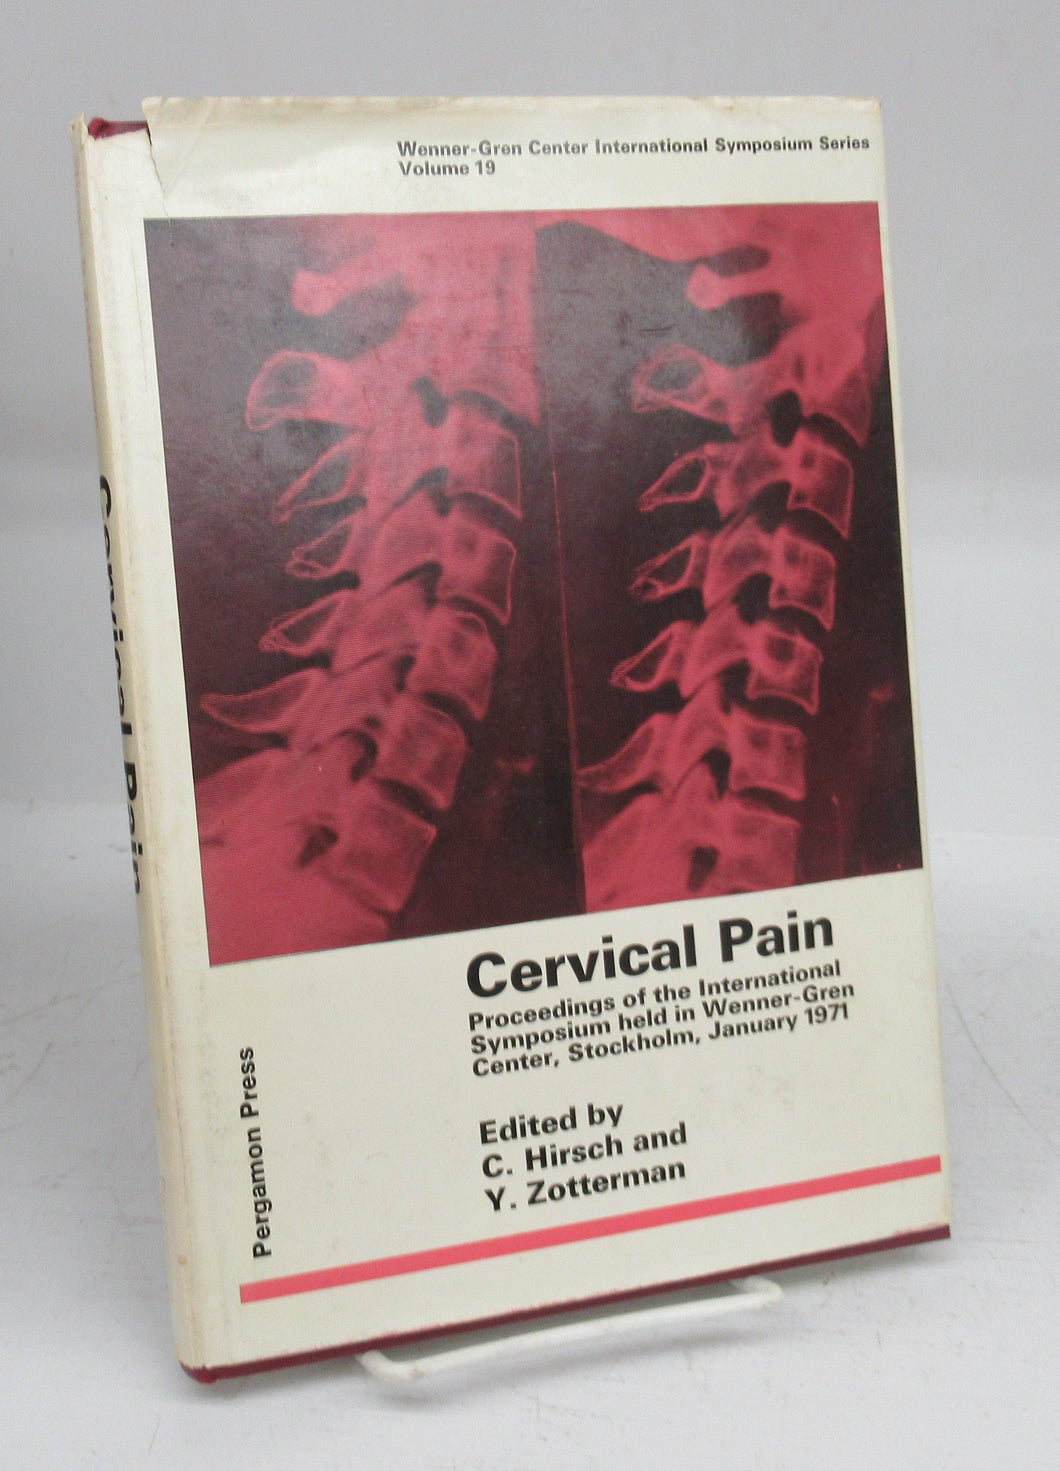 Cervical Pain: Proceedings of the International Symposium held in Wenner-Gren Center, Stockholm, January 1971